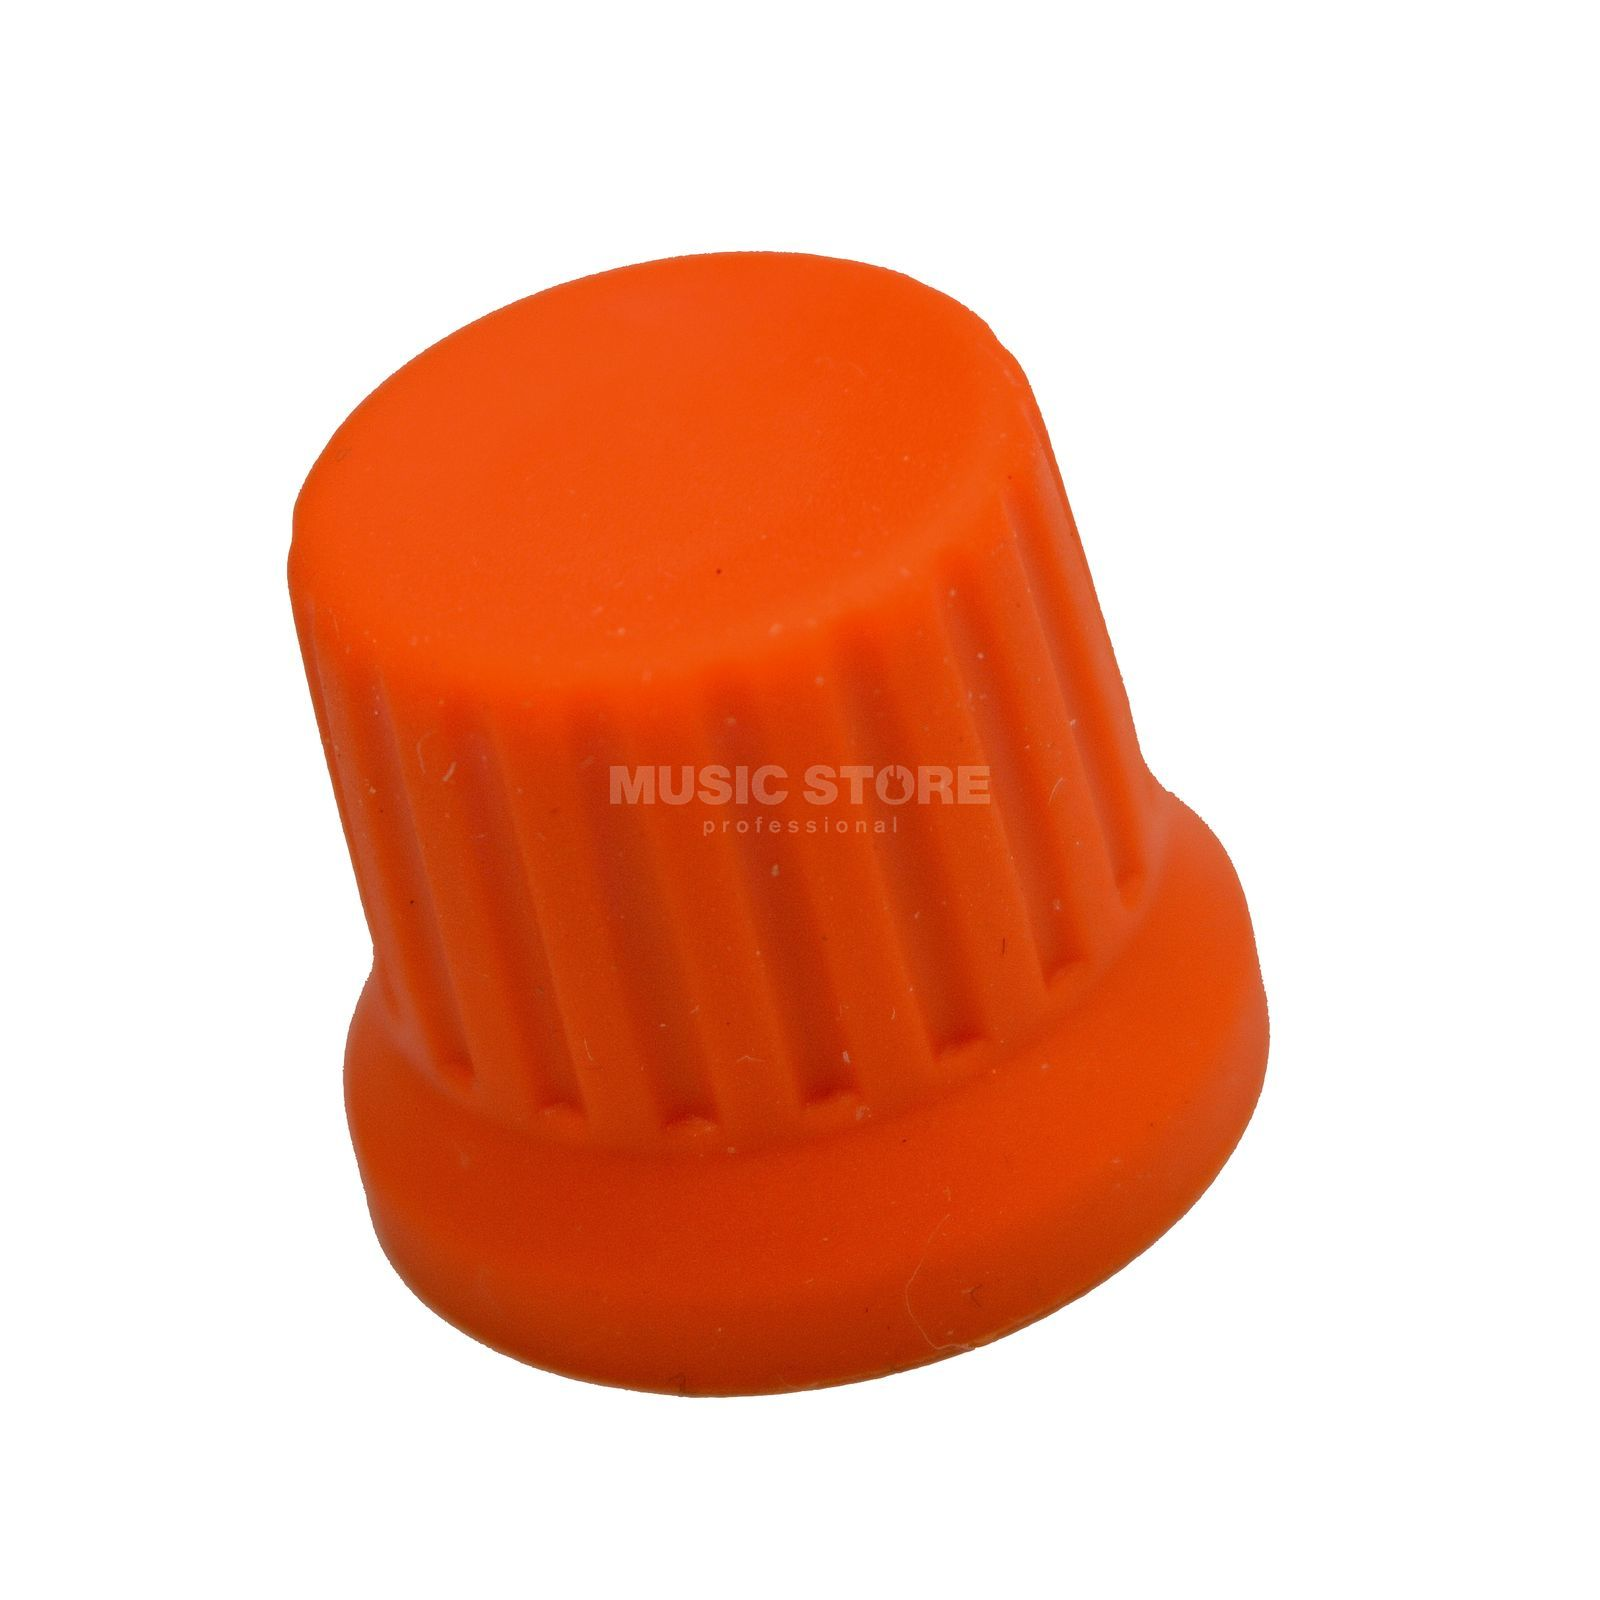 DJ TECHTOOLS Chroma Caps Encor Knob orange Изображение товара